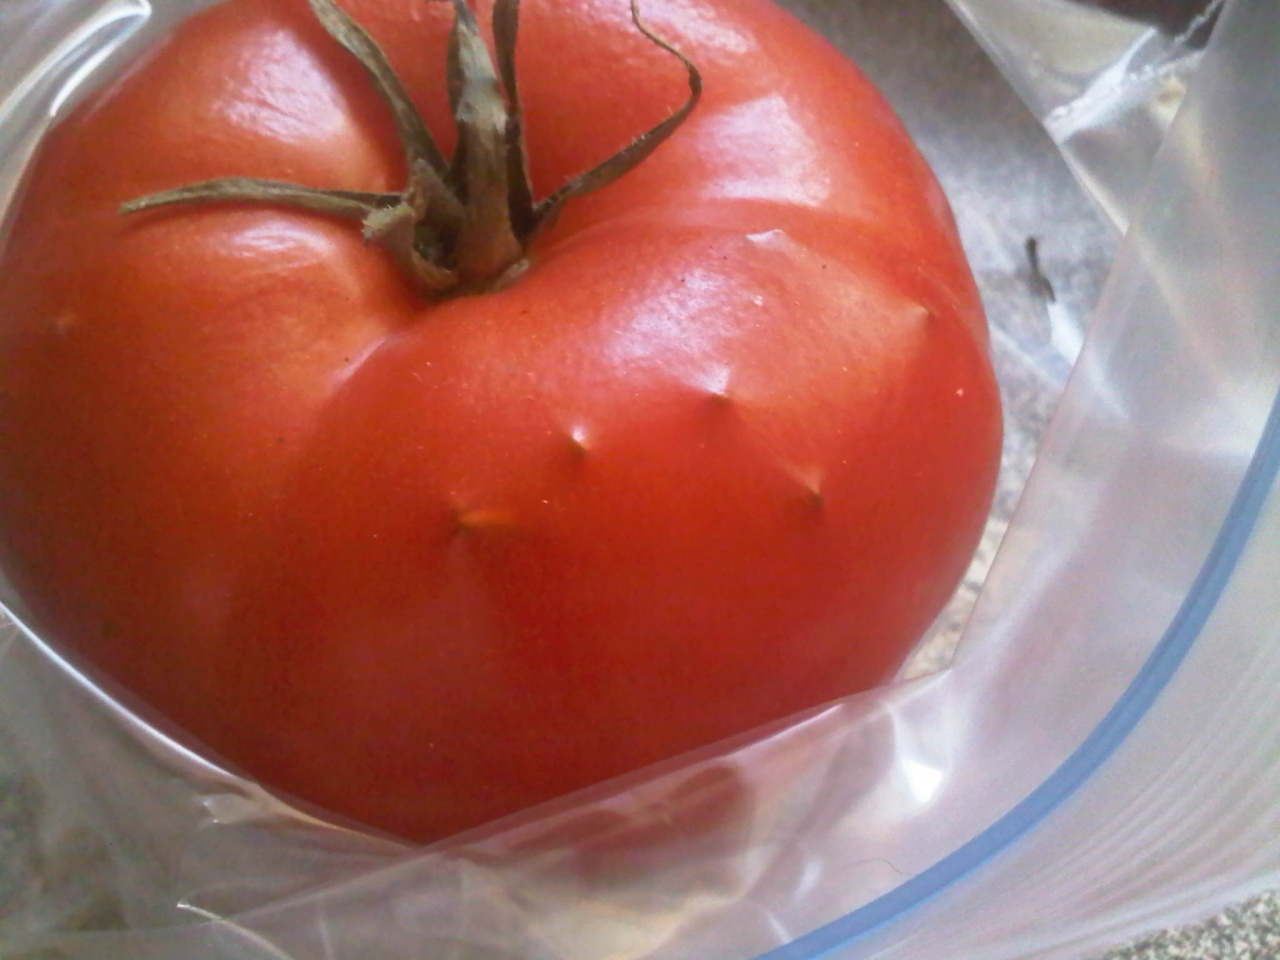 What's wrong with this tomato?? Img00322